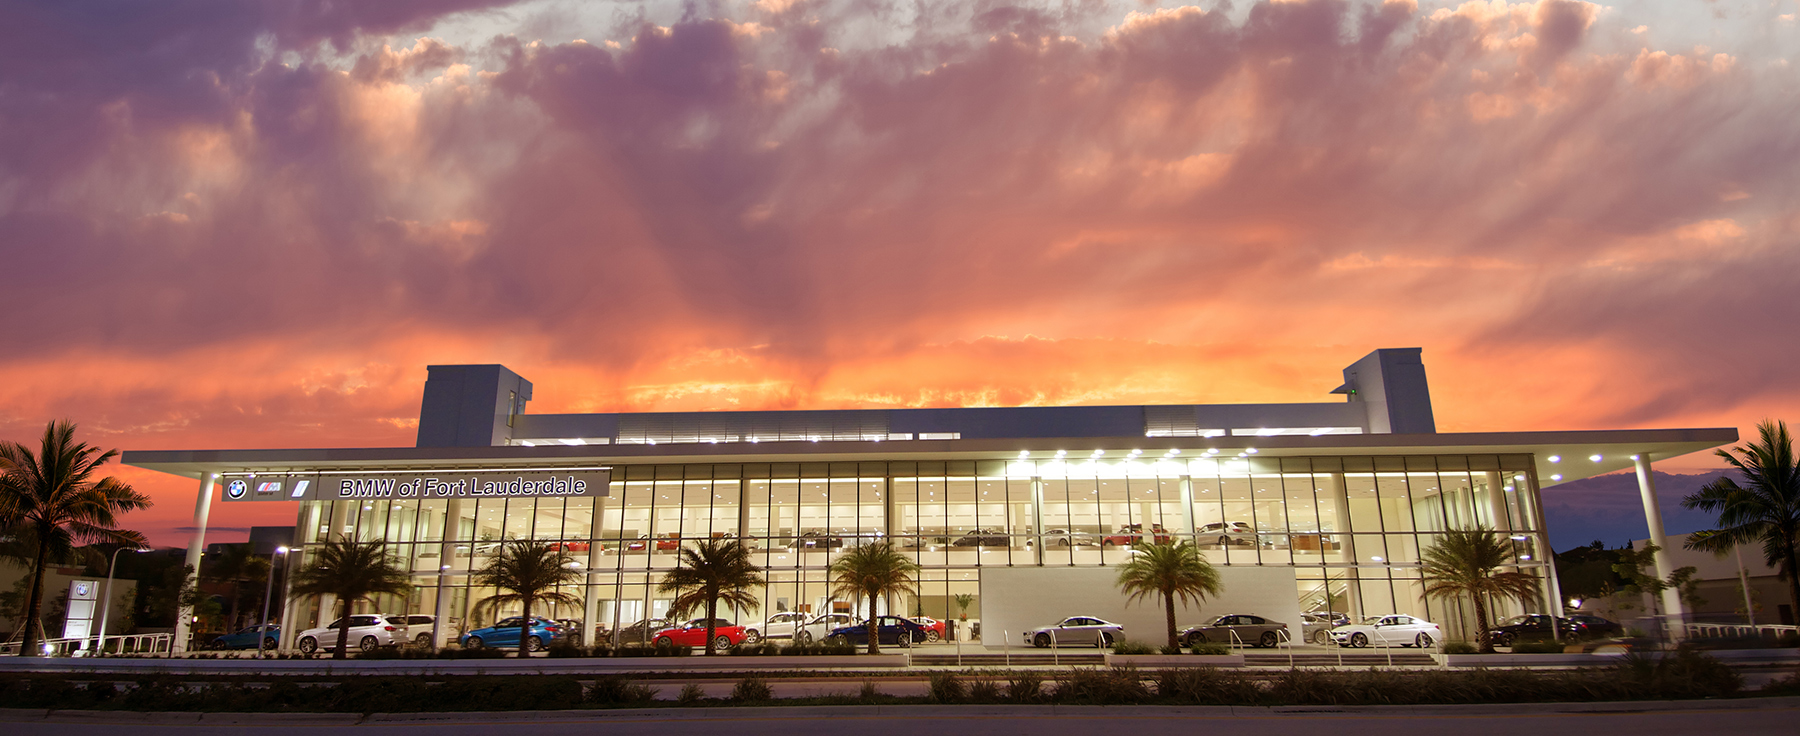 Fort Lauderdale Bmw >> Bmw Of Fort Lauderdale Tricarico Architecture And Design